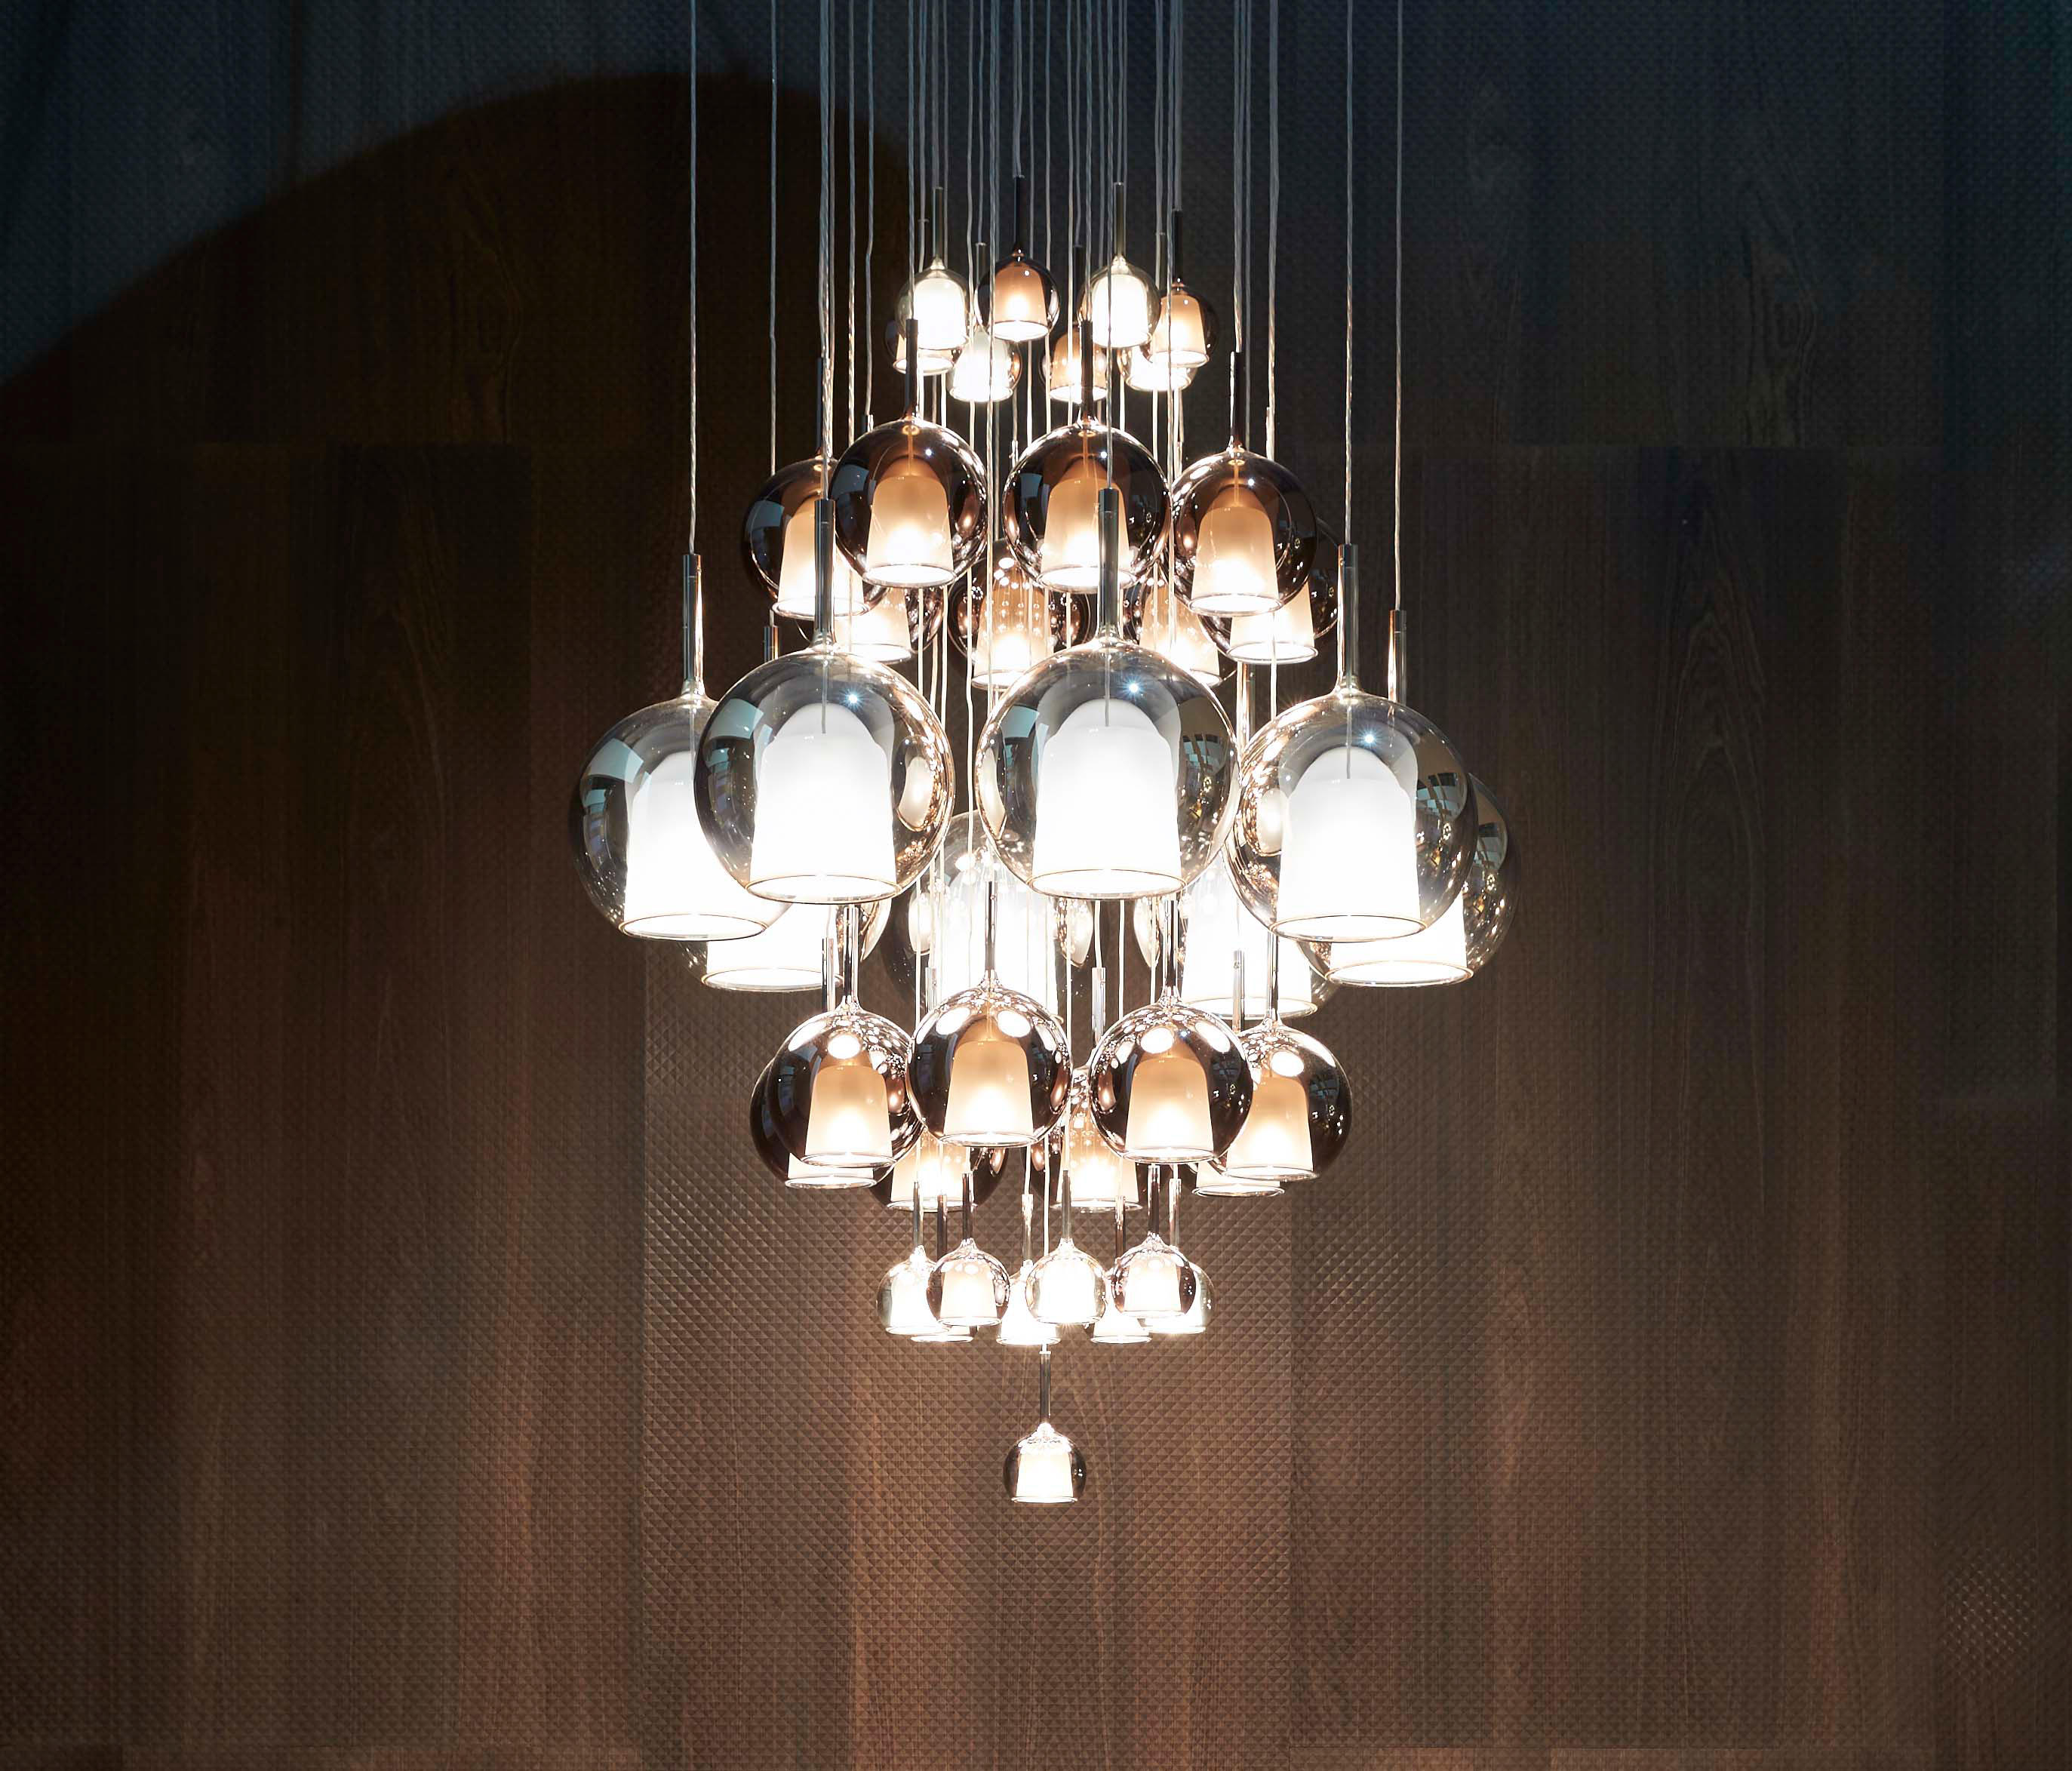 GLO PENDANT - General lighting from Penta | Architonic